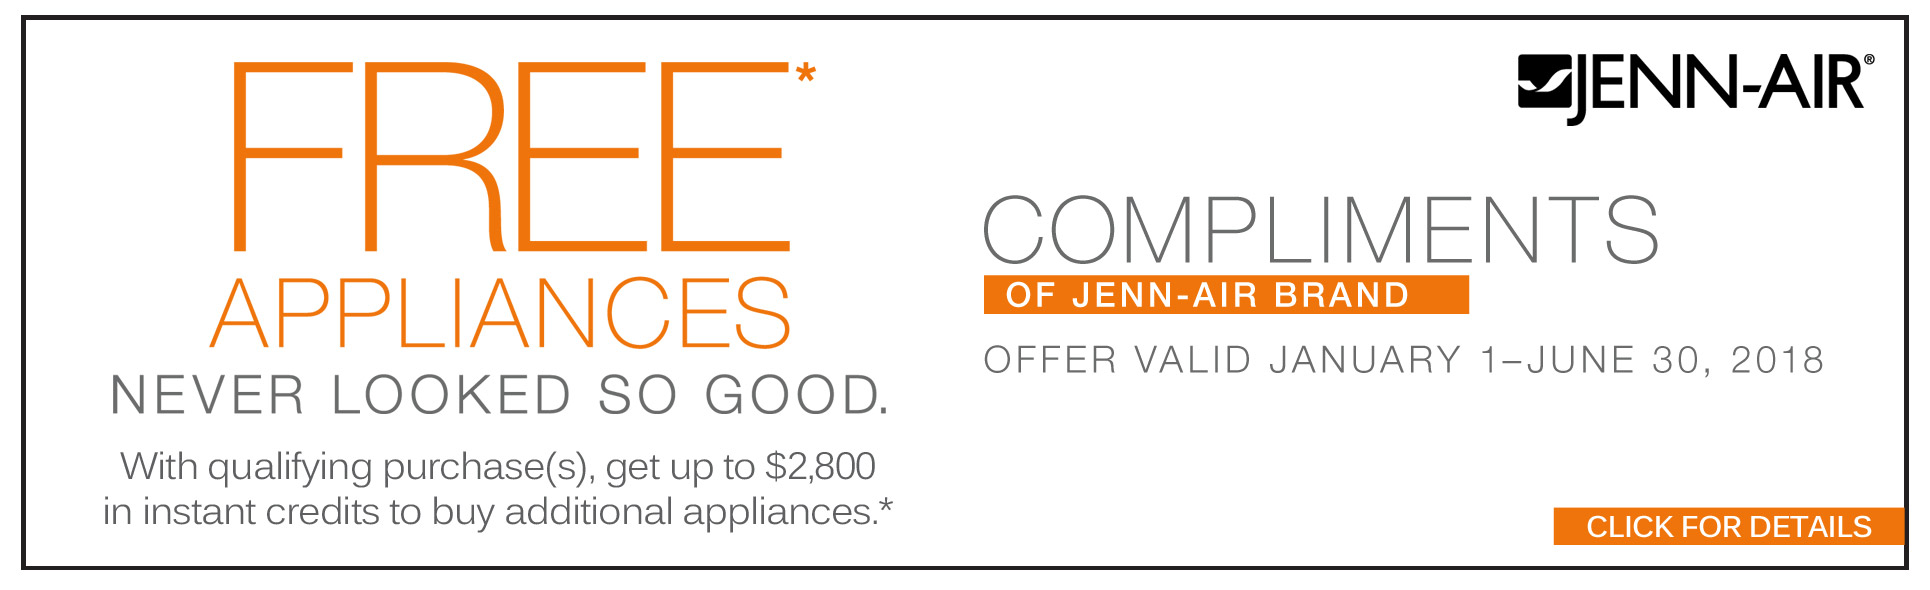 Jenn-Air Compliments Rebate Savings